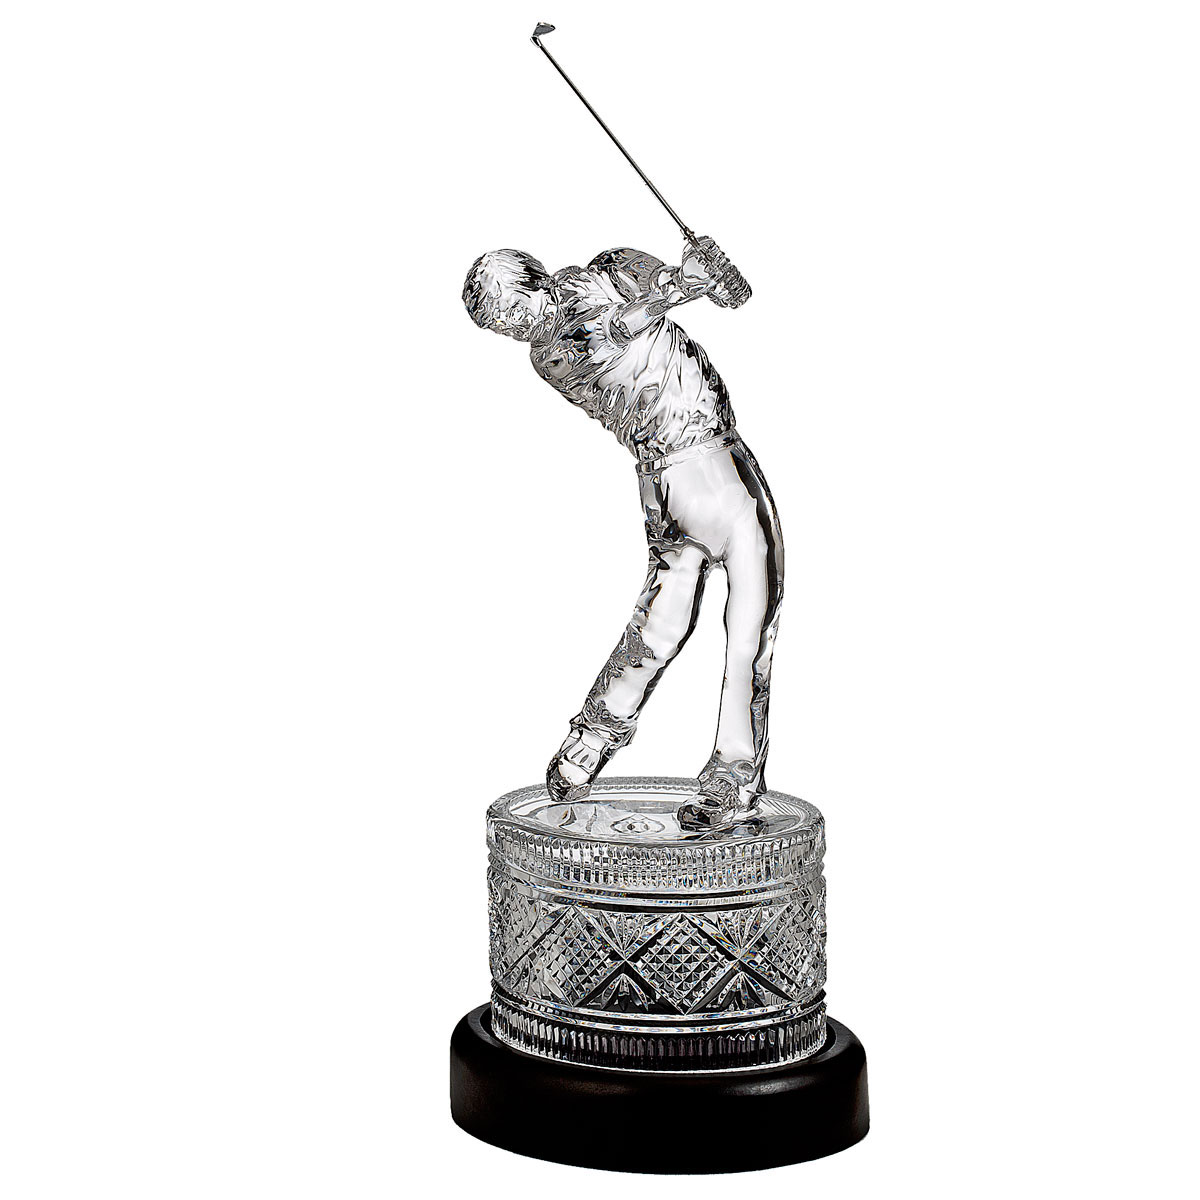 Waterford Crystal, House of Waterford Large Golfer, Limited Edition of 5